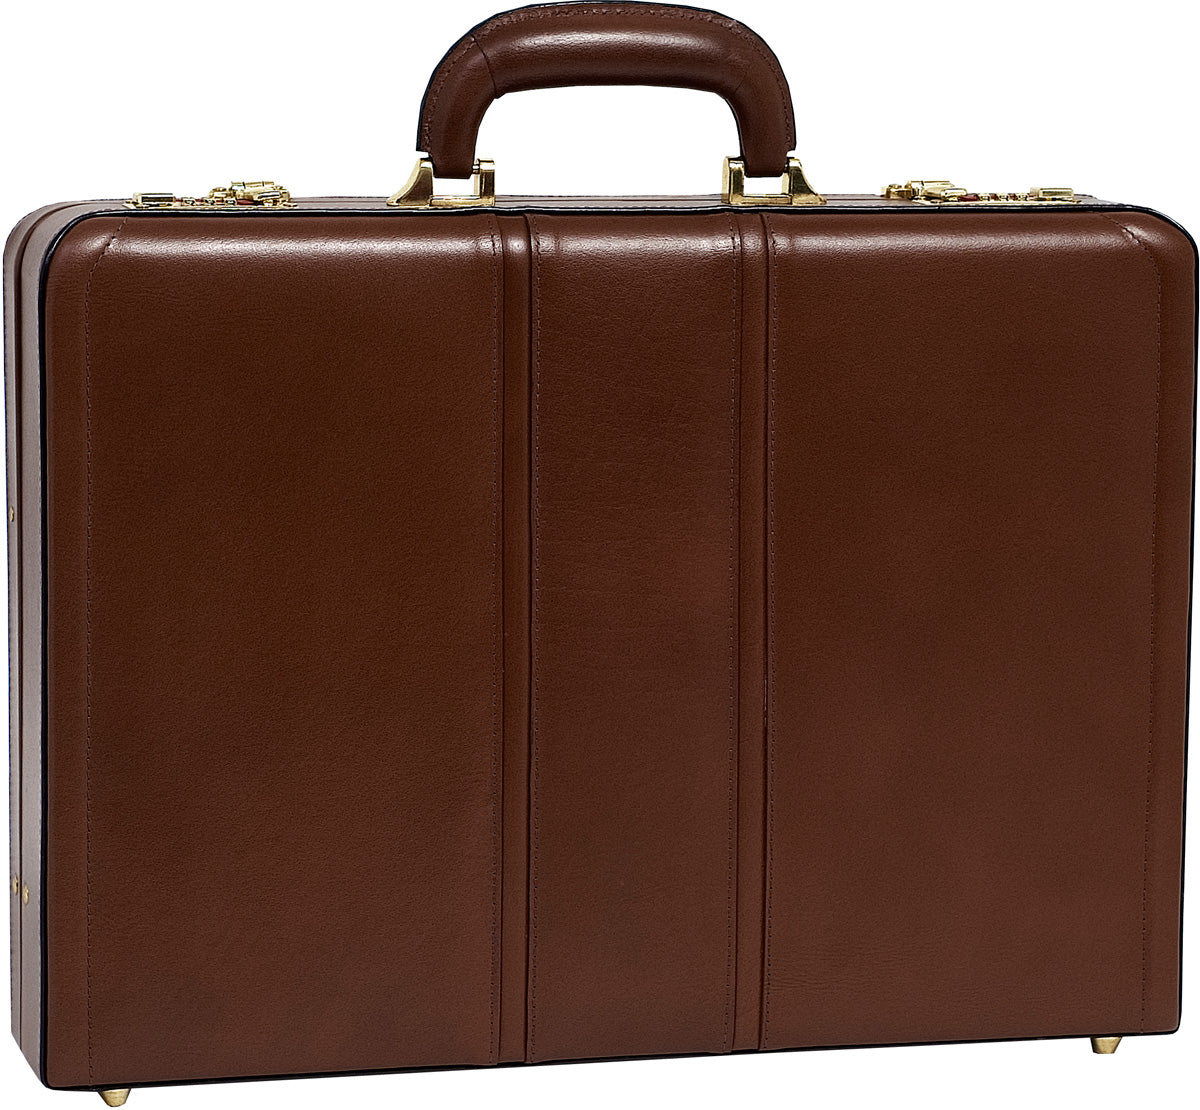 McKlein V Series Daley Leather Attache Case